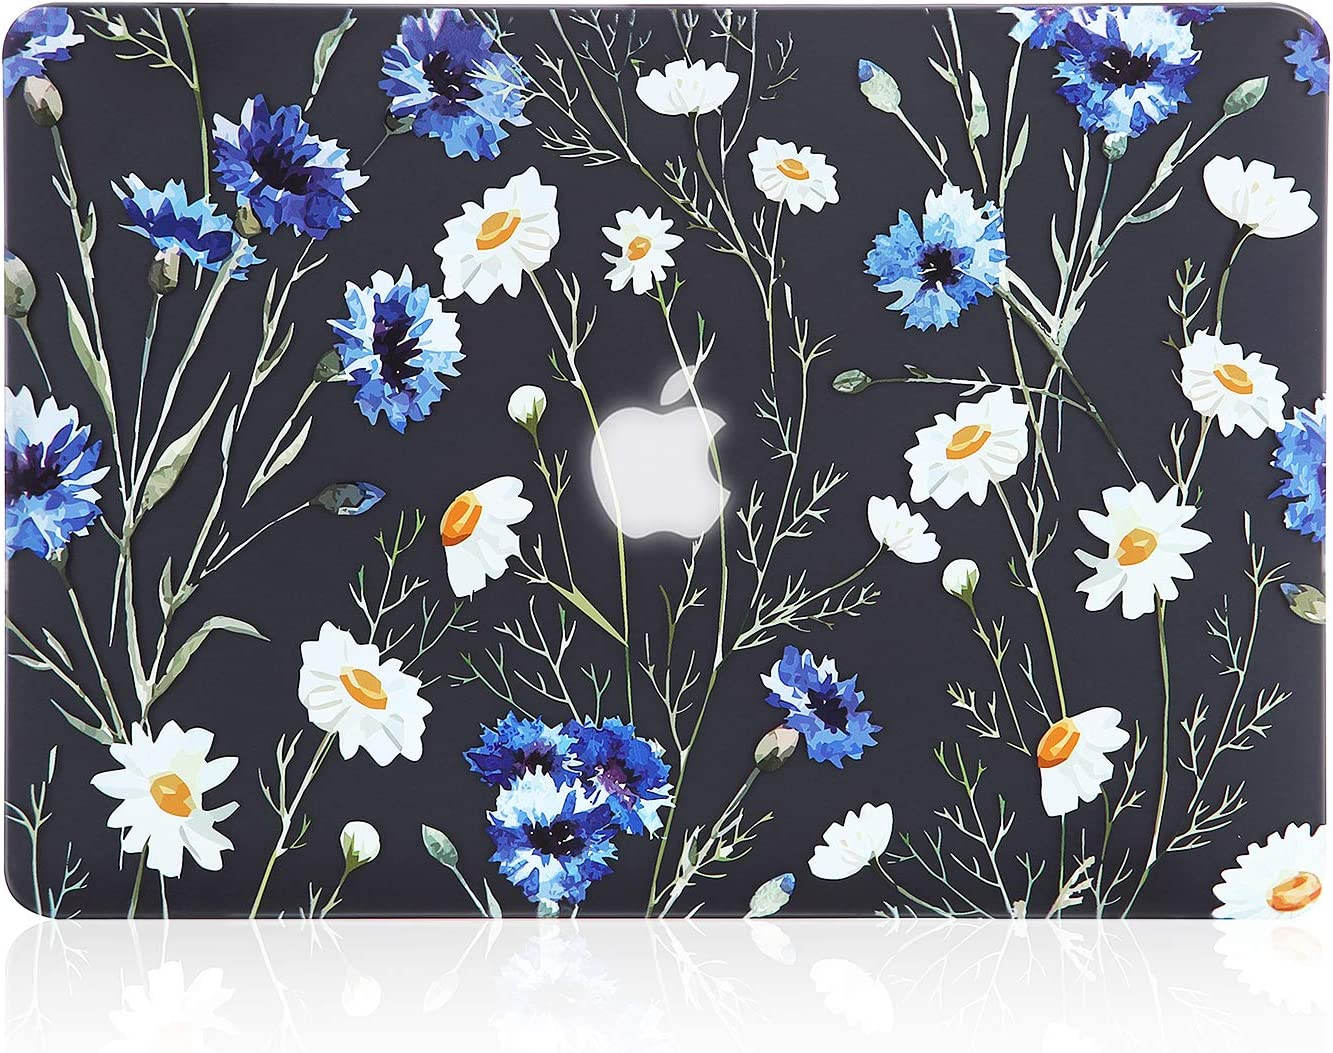 iDonzon MacBook Pro 13 inch Case (A2159 A1989 A1706 A1708, 2019 2018 2017 2016 Release), 3D Effect Matte Black See Through Hard Cover Compatible Mac Pro 13.3 inch with Touch ID - Floral